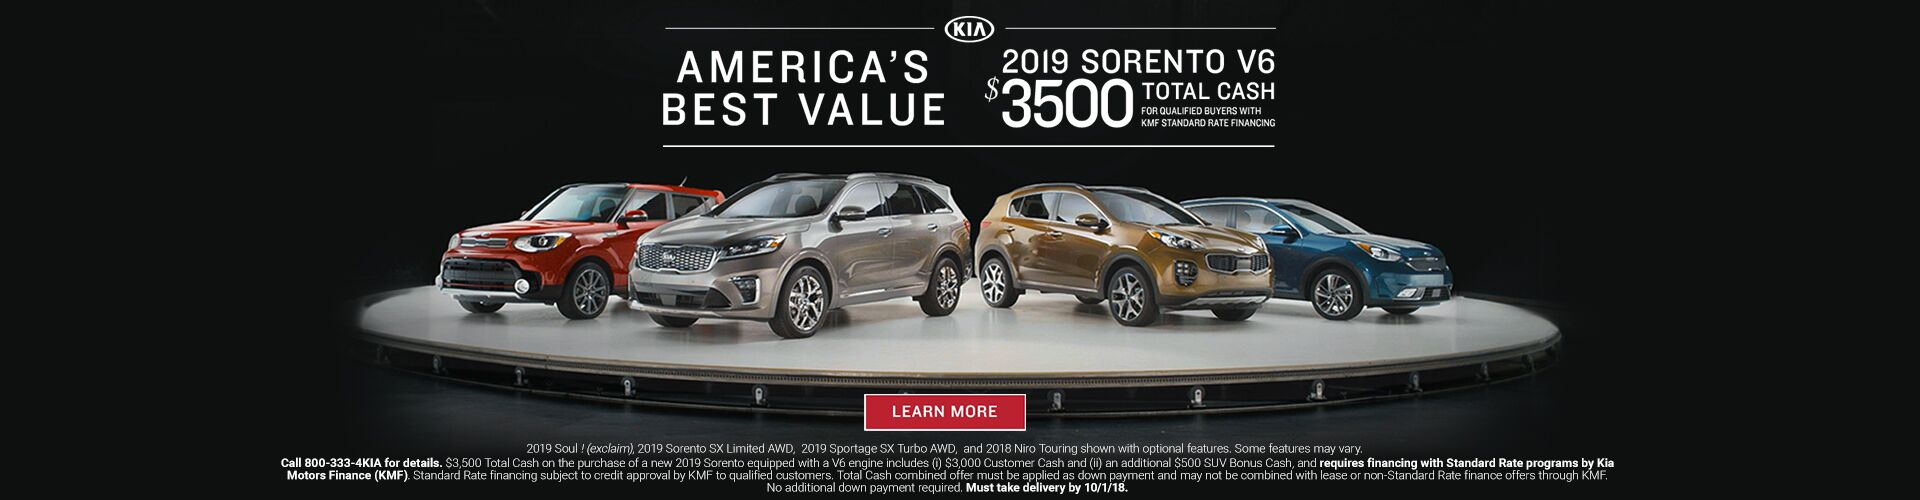 America's Best Value 2019 Sorento Kia of Irvine